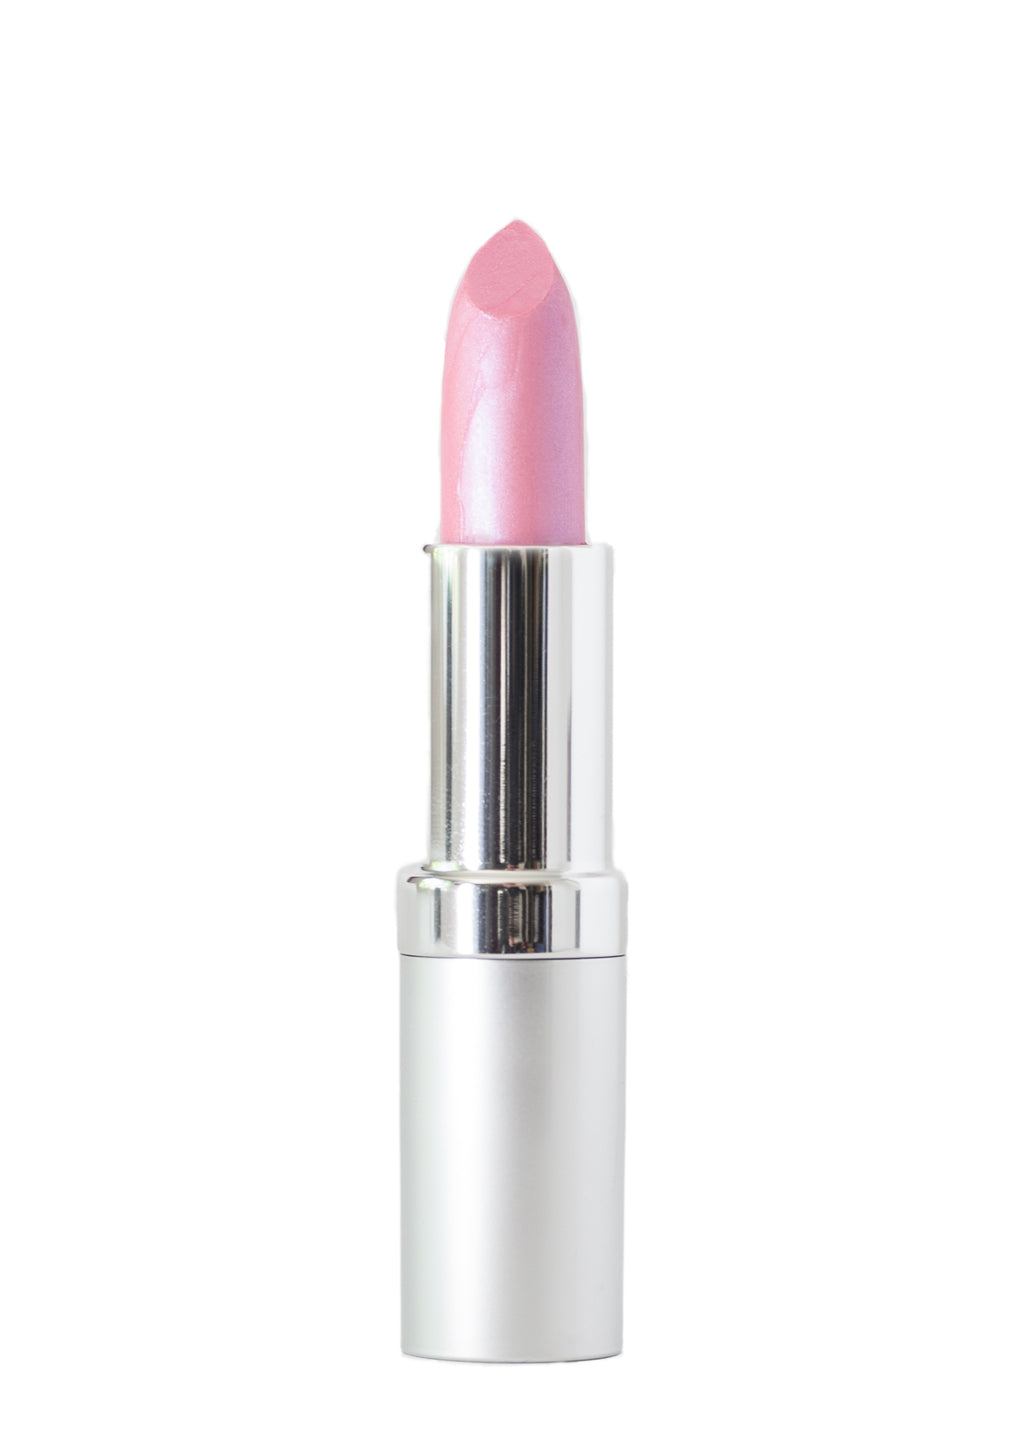 Reb Cosmetics Stand Out Pink Lipstick (4.5g)